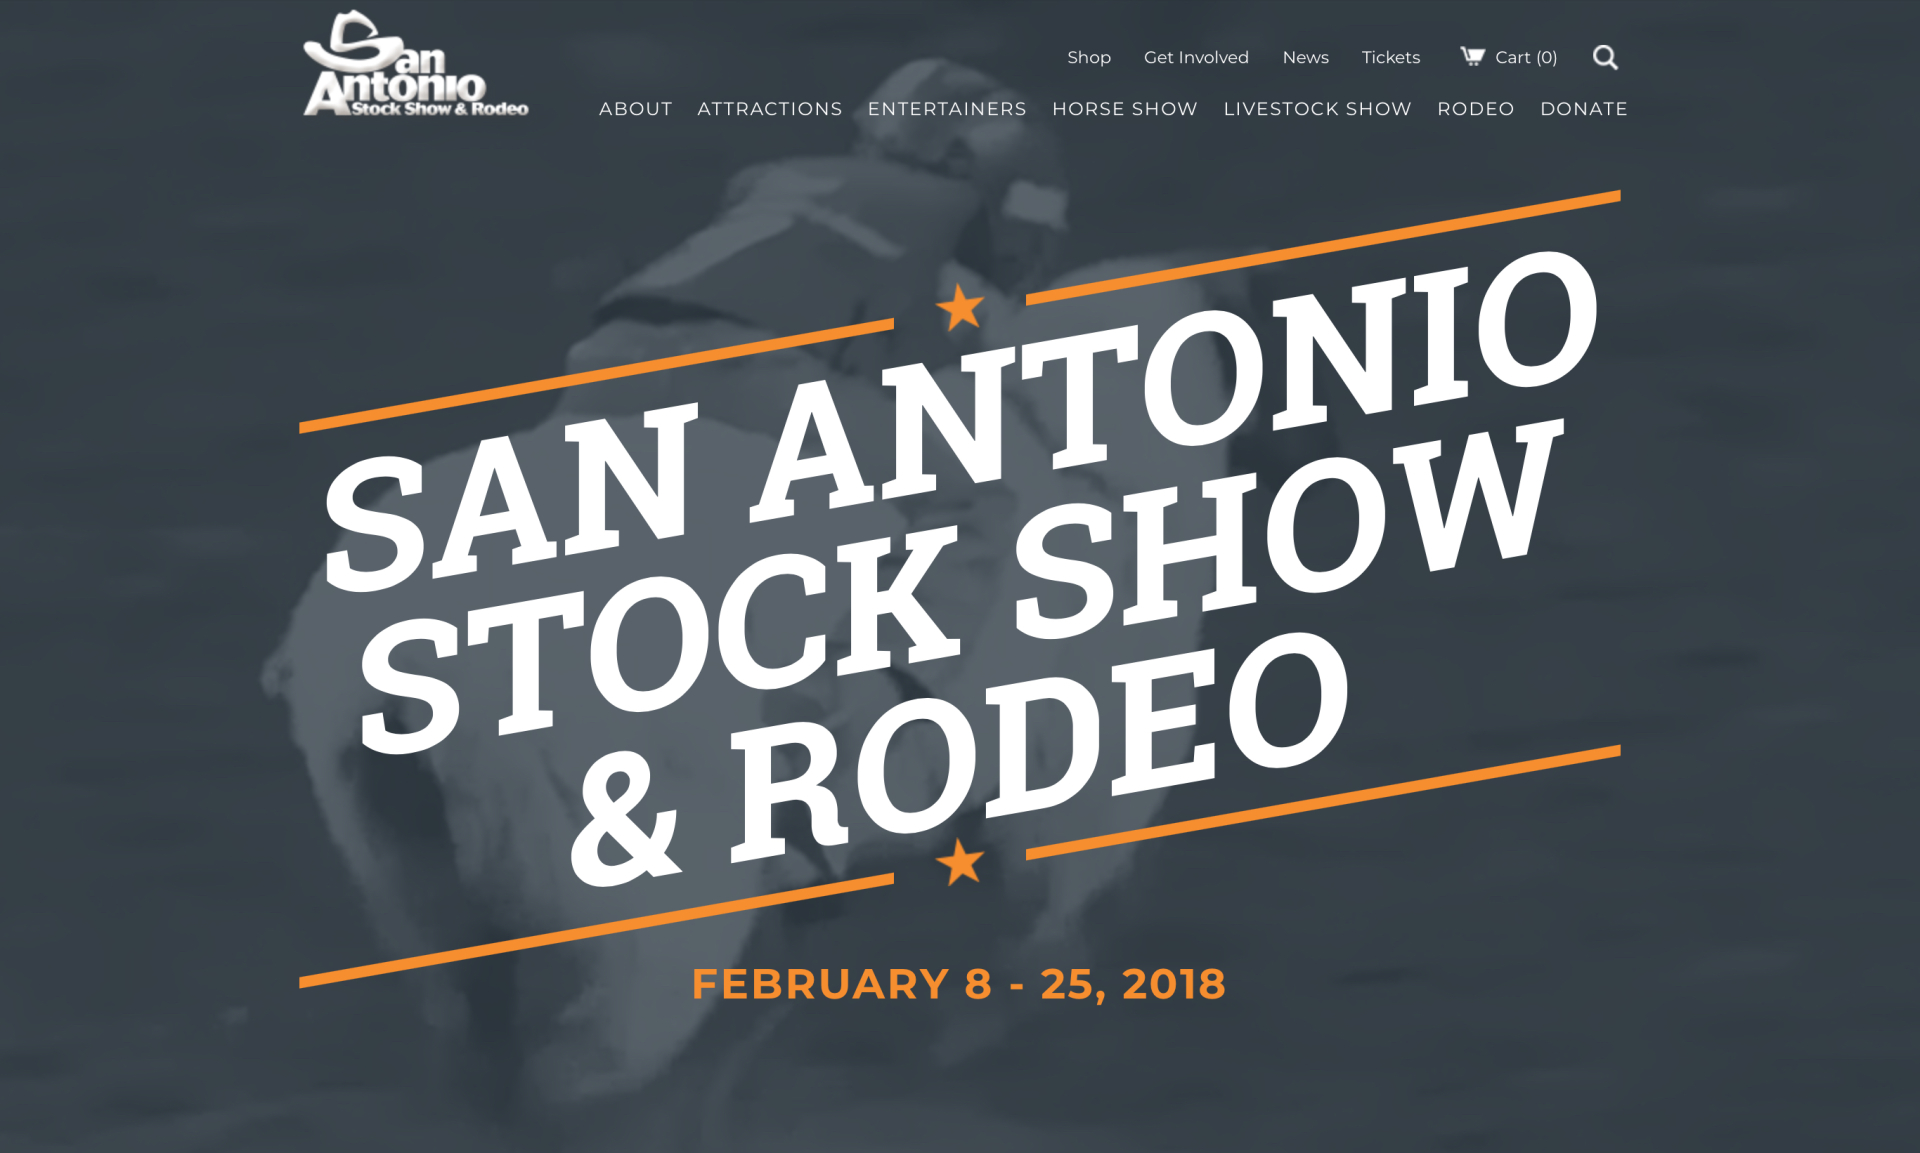 Stock Show & Rodeo